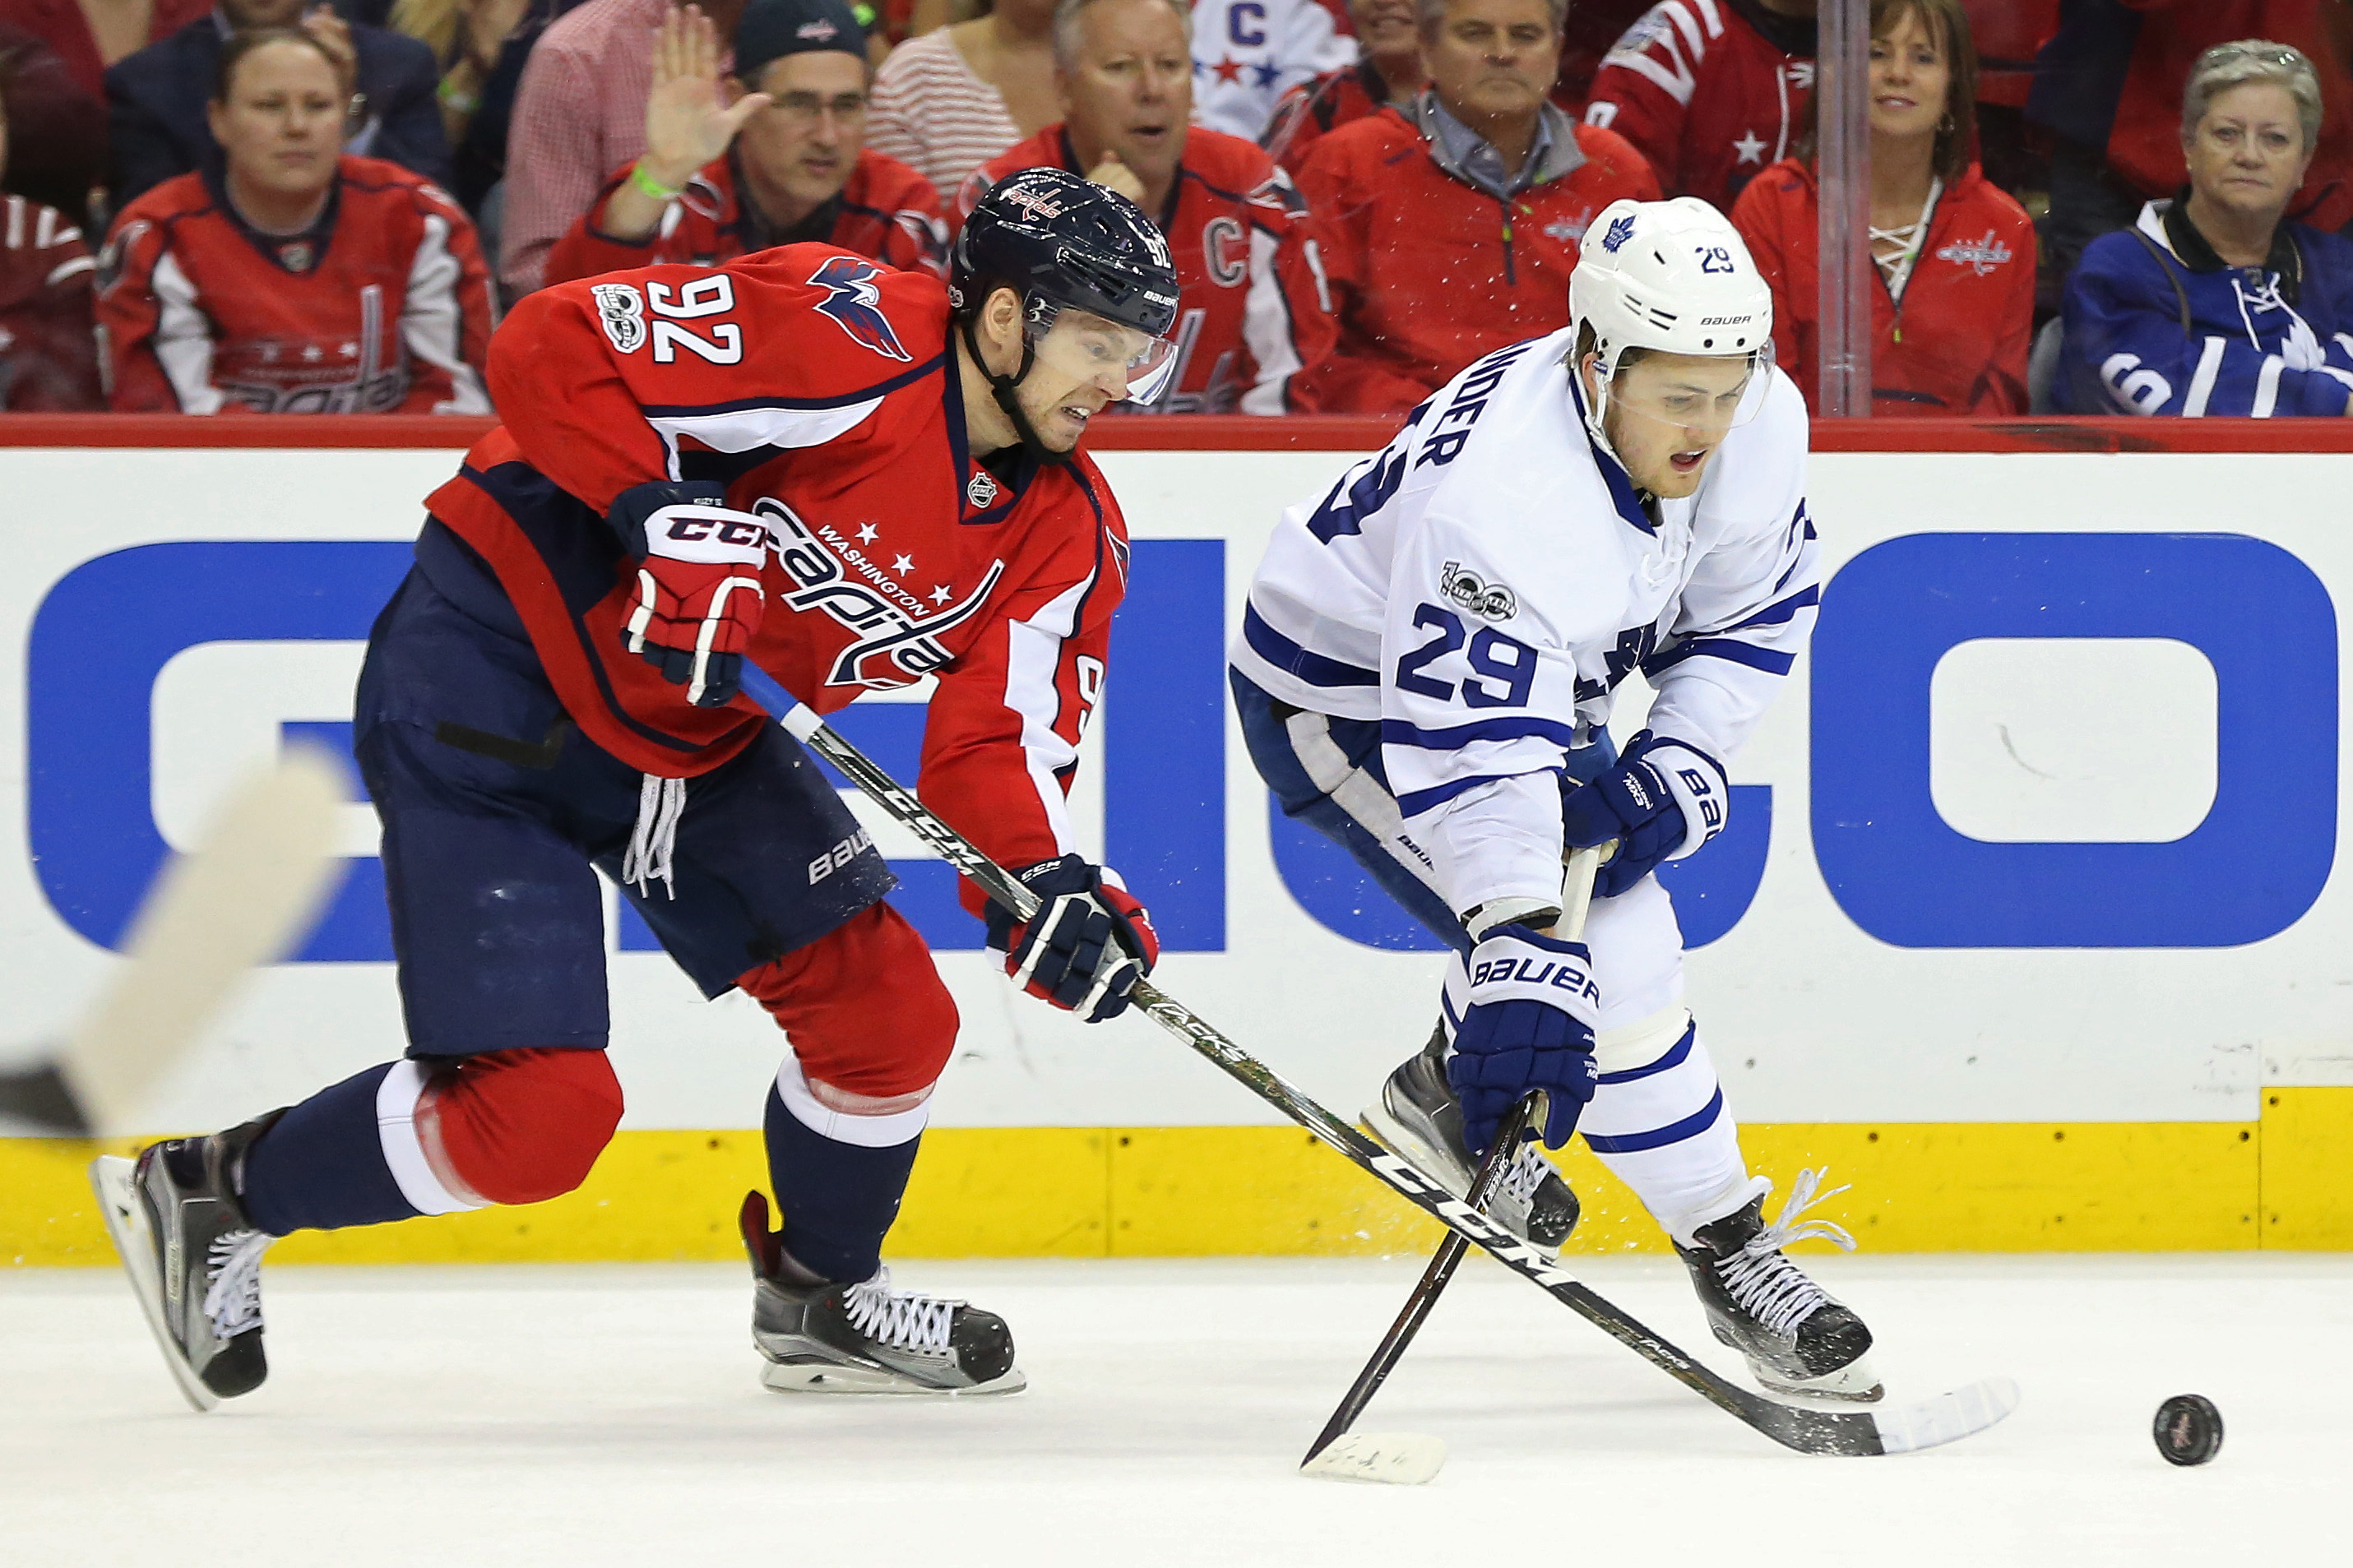 10024547-nhl-stanley-cup-playoffs-toronto-maple-leafs-at-washington-capitals